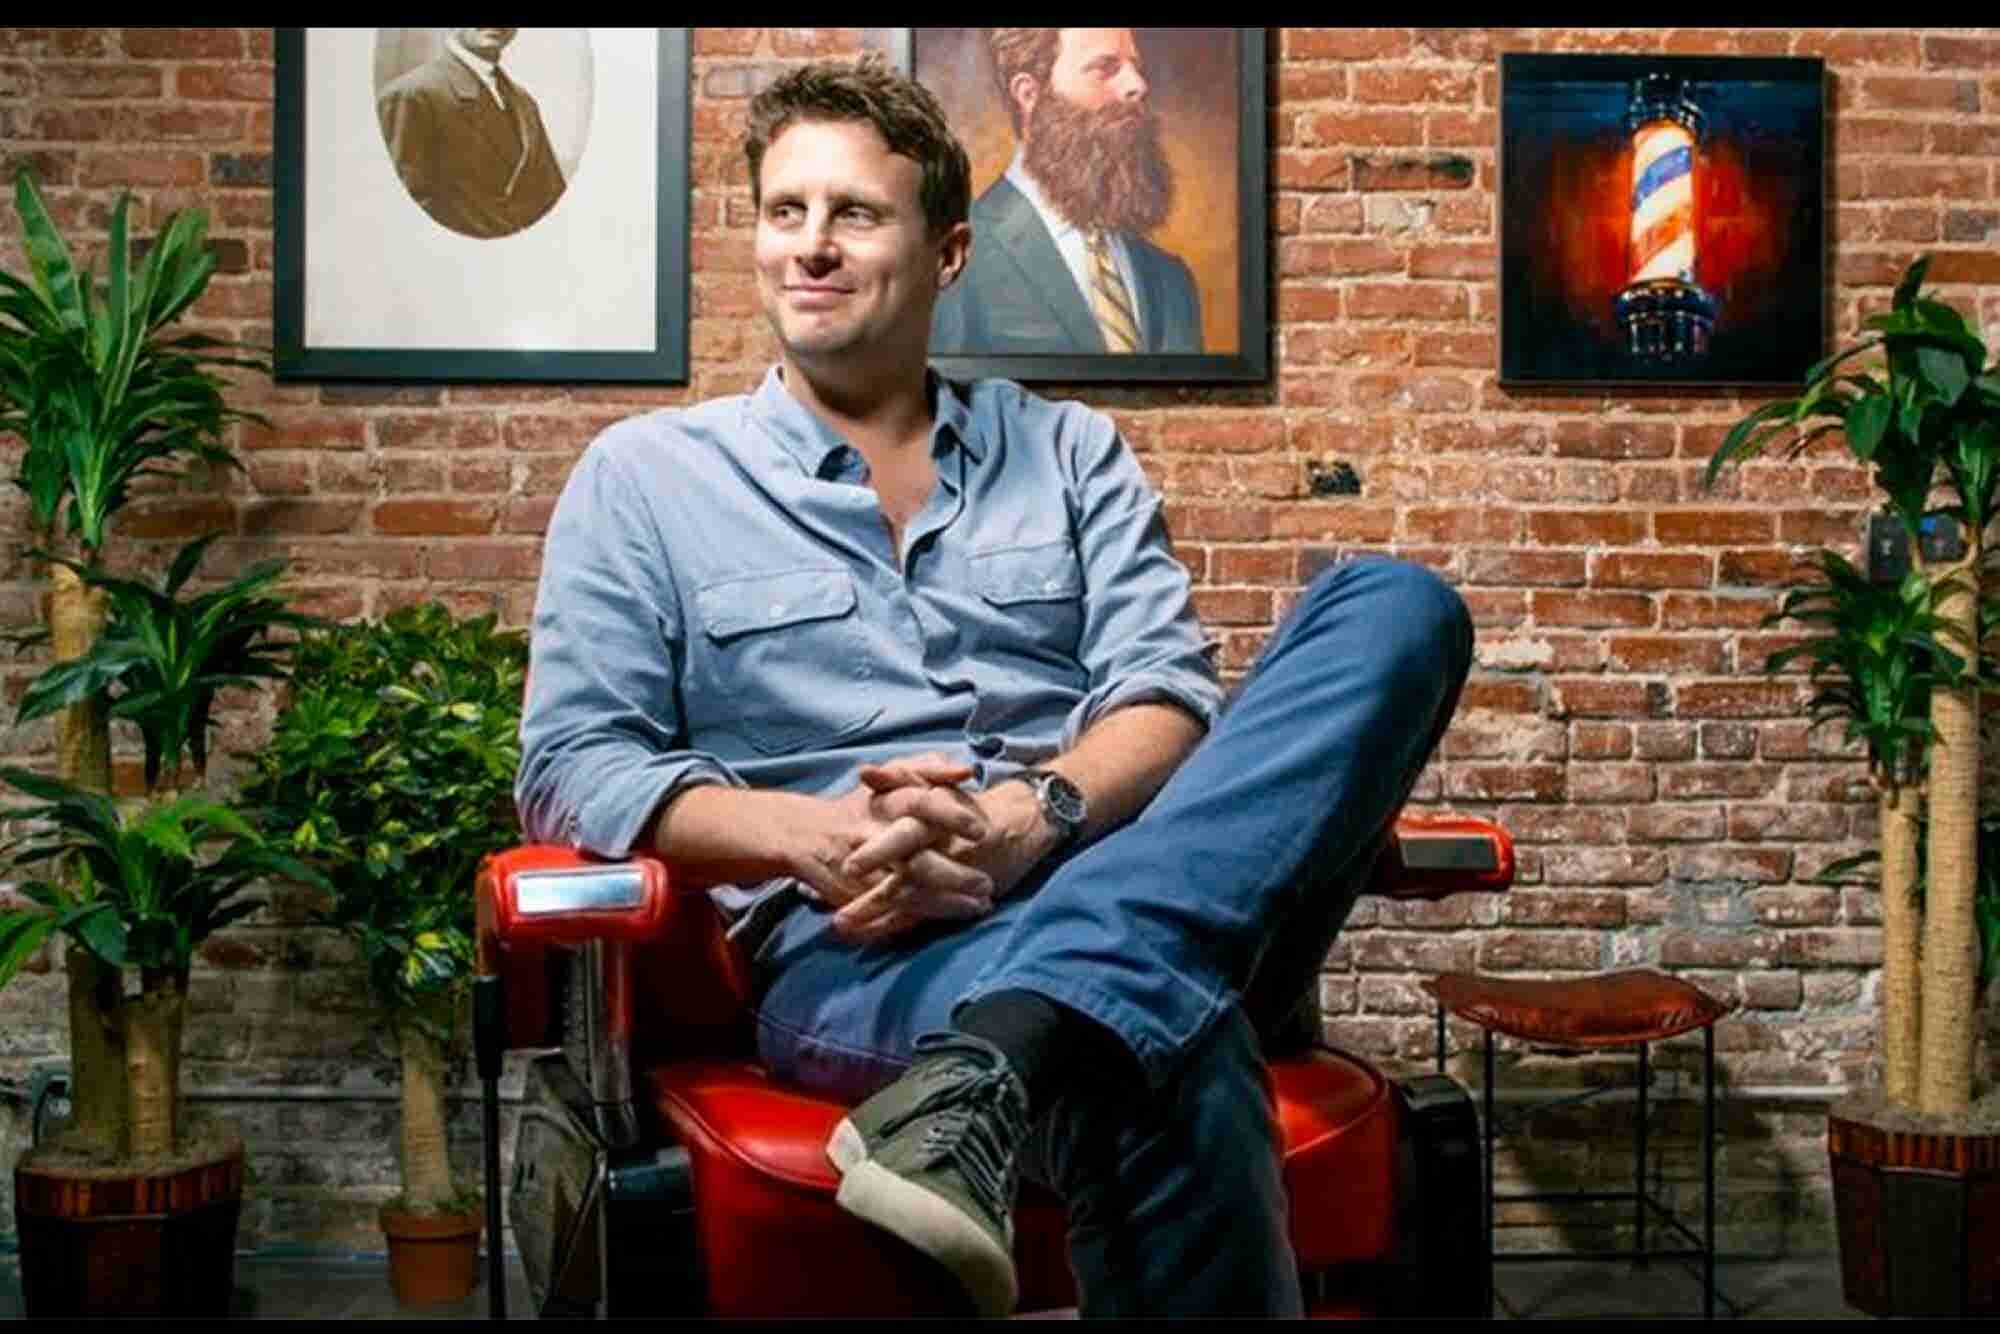 Adult Butt Wipes and Razors by Mail: How Dollar Shave Club Takes on the Big Companies